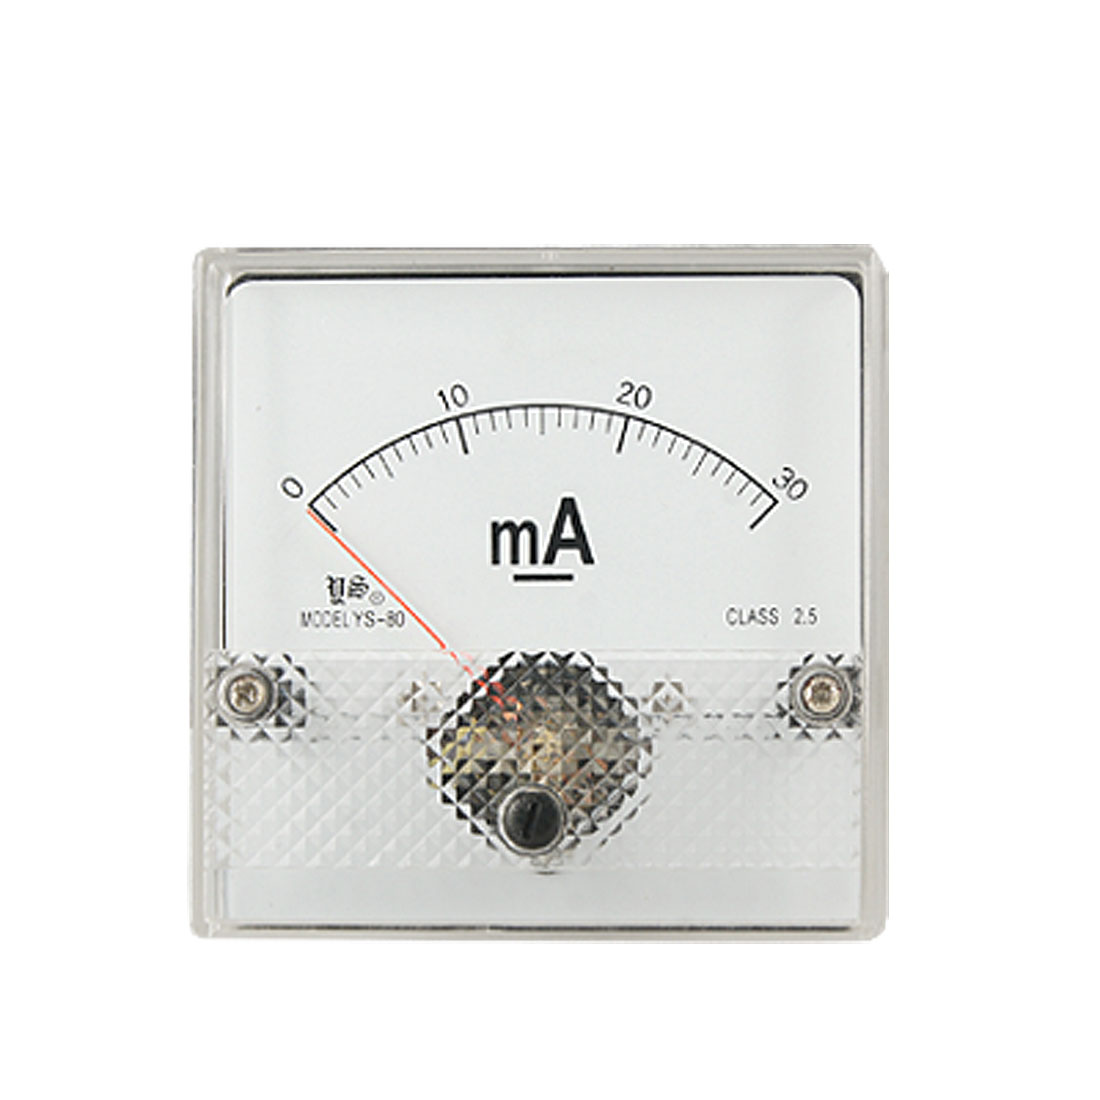 DC 0-30mA Current Panel Ammeter Gauge Class 2.5 YS-80